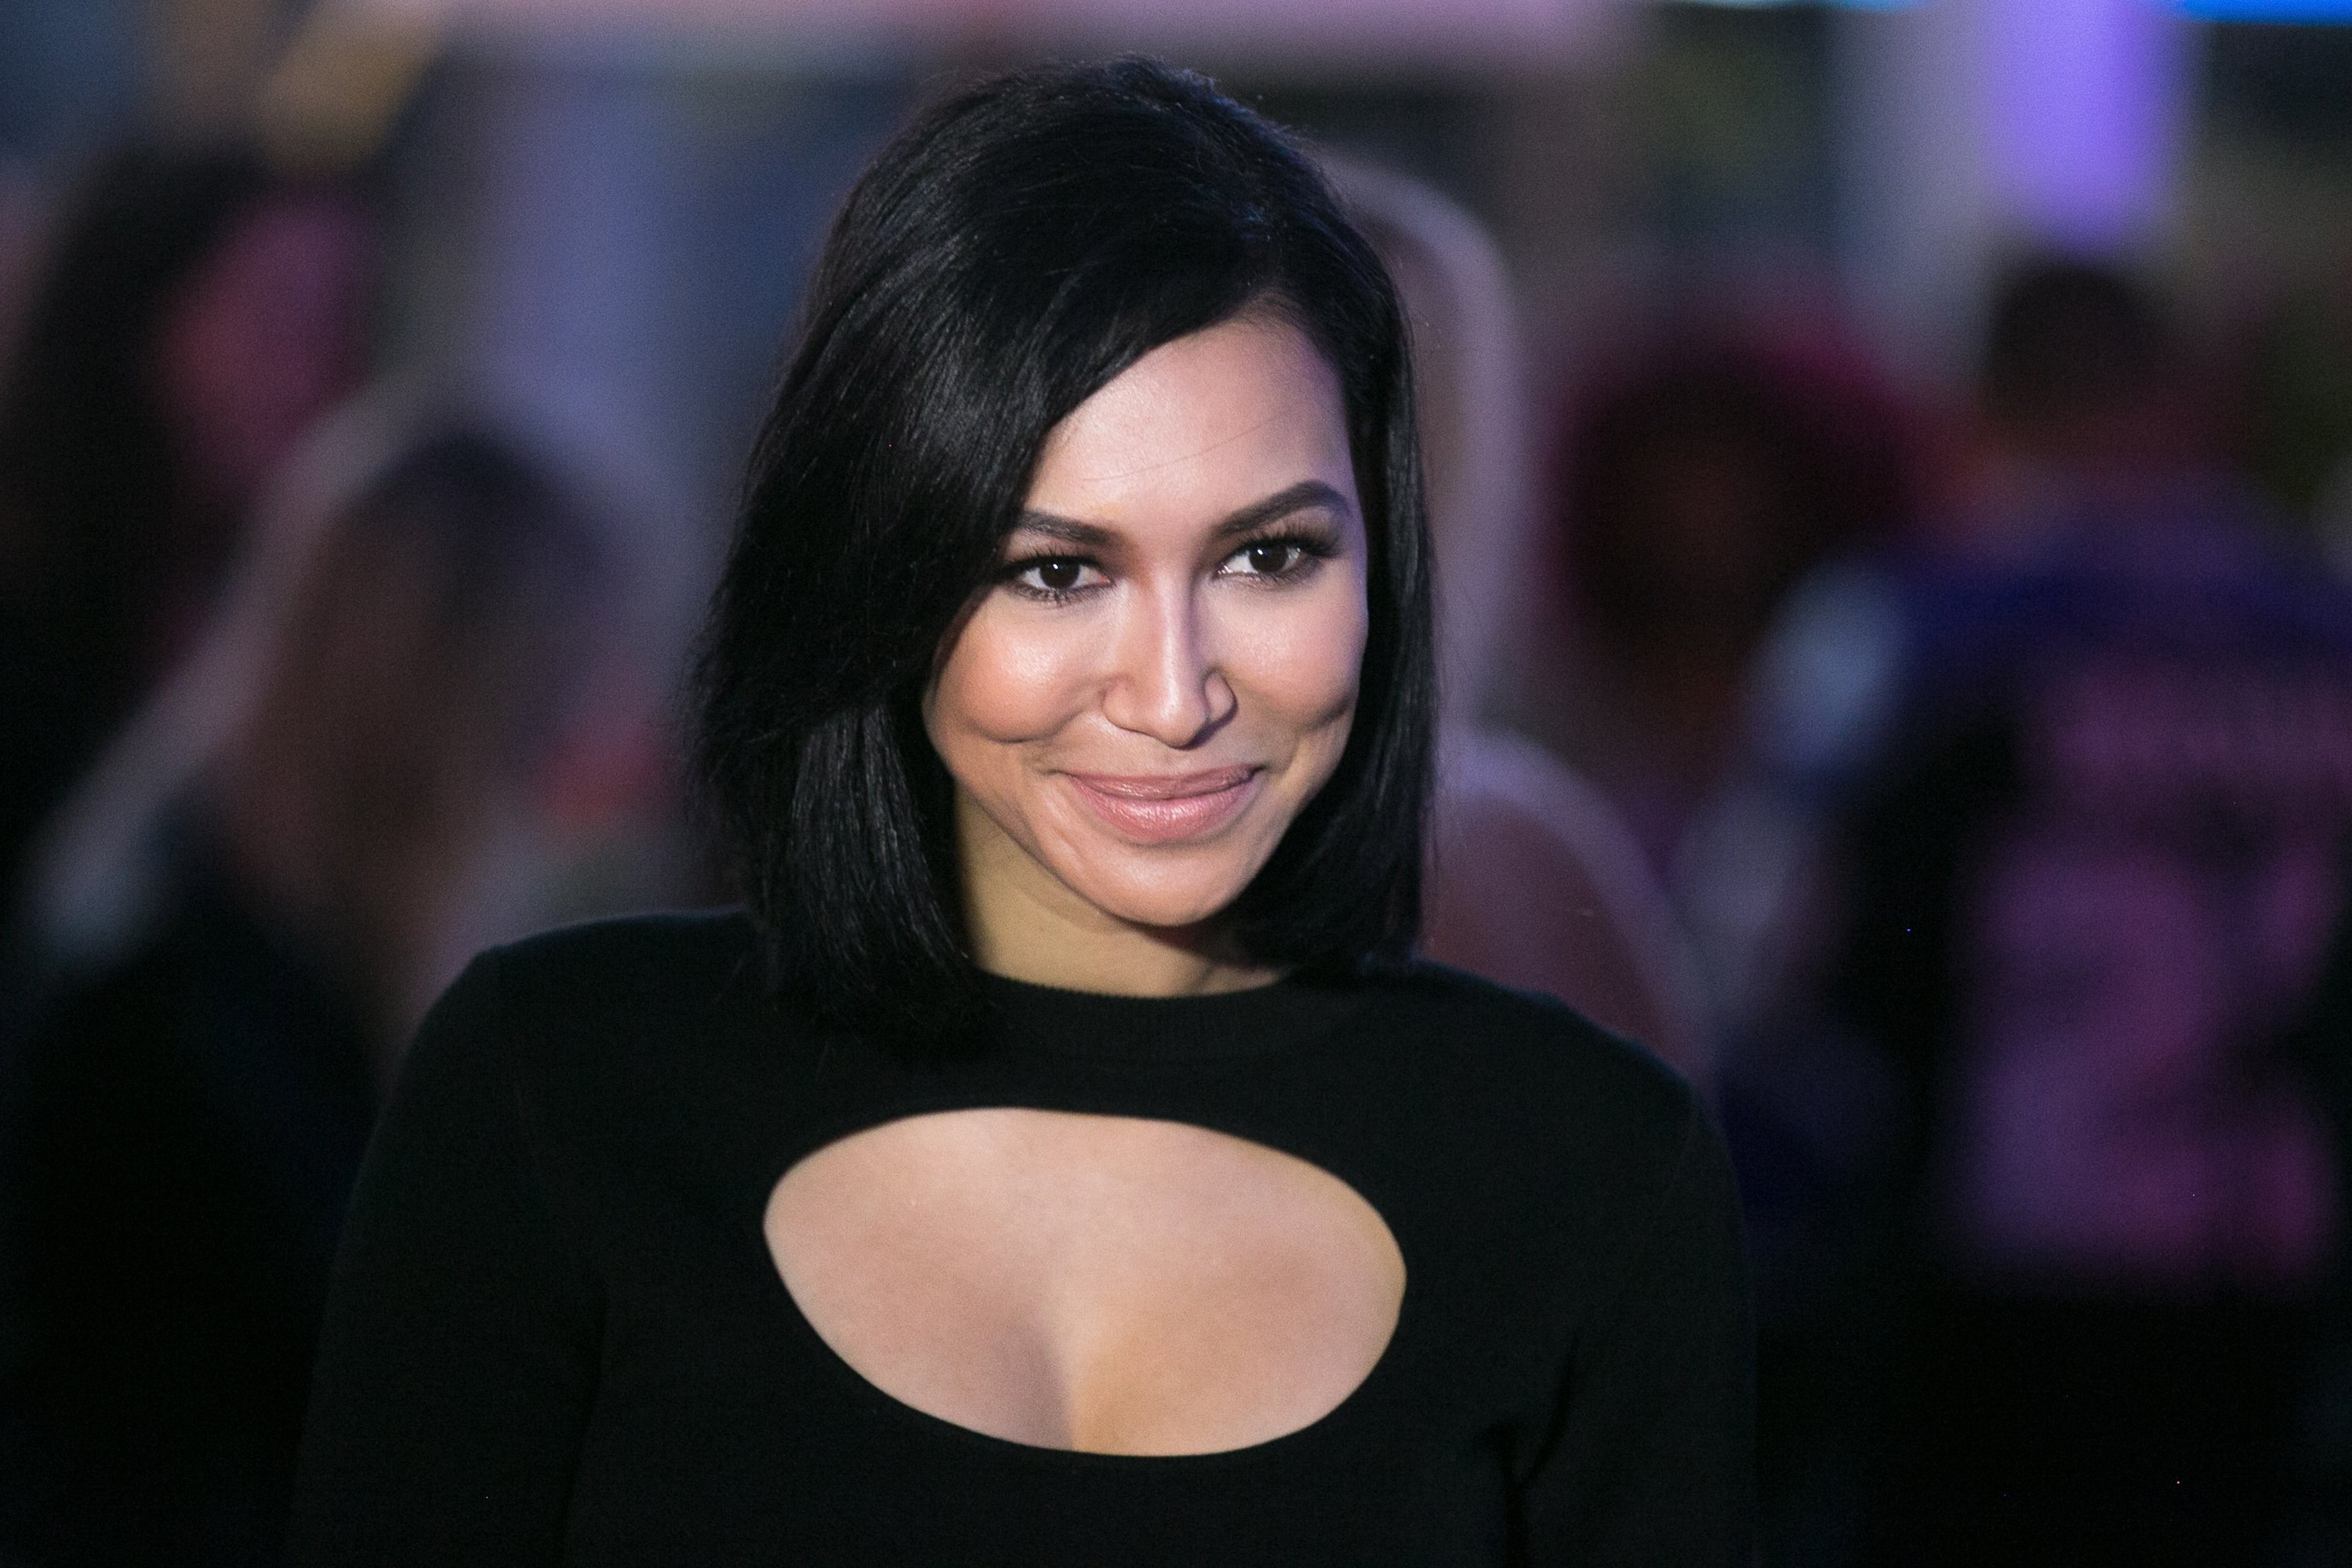 Naya Rivera attends the March Of Dimes: Imagine A World Premiere Event on November 9, 2017, in Los Angeles, California. | Photo: Getty Images